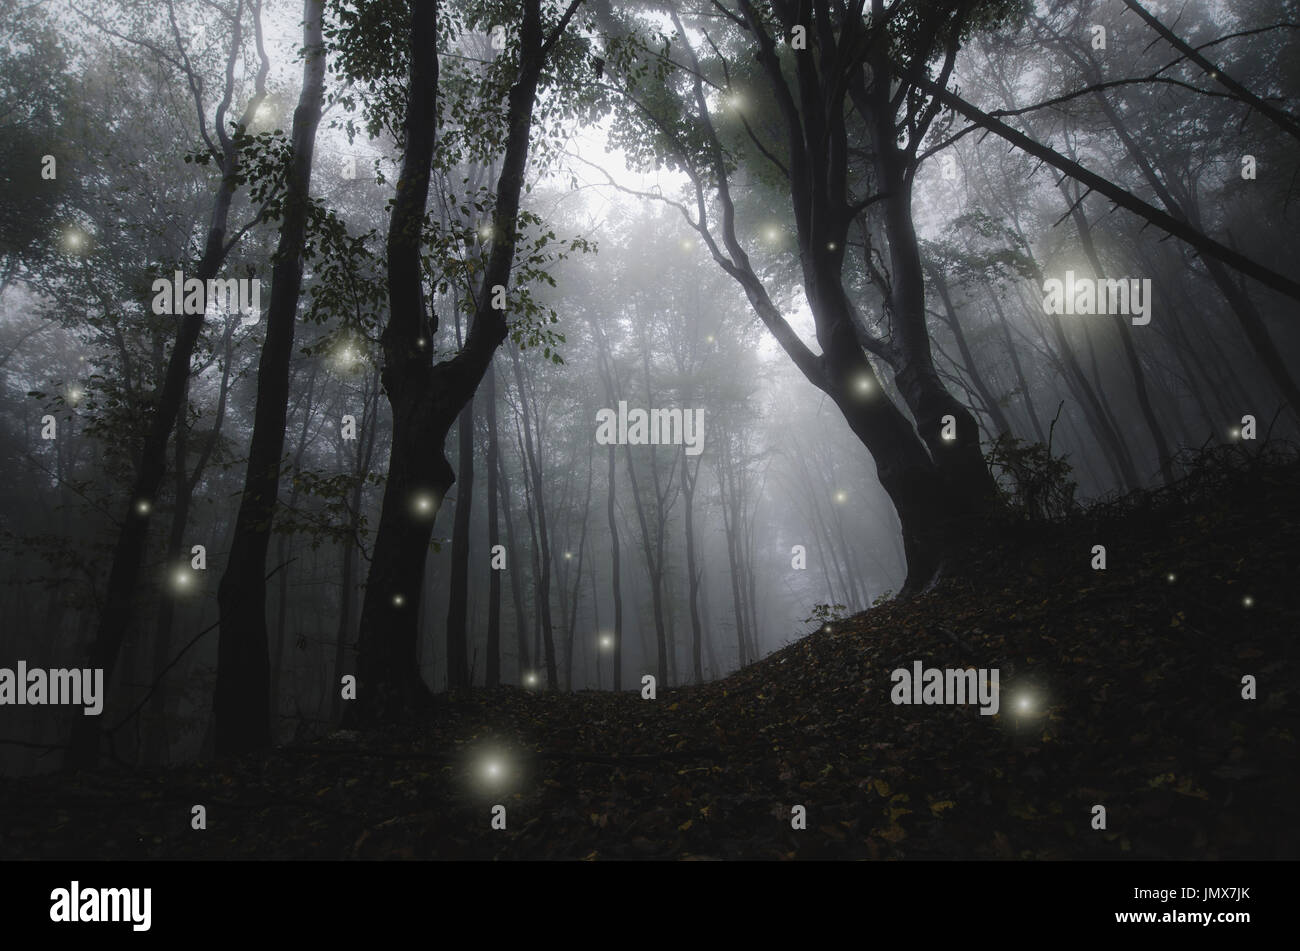 magical sparkles in foggy woods, dark fantasy landscape - Stock Image